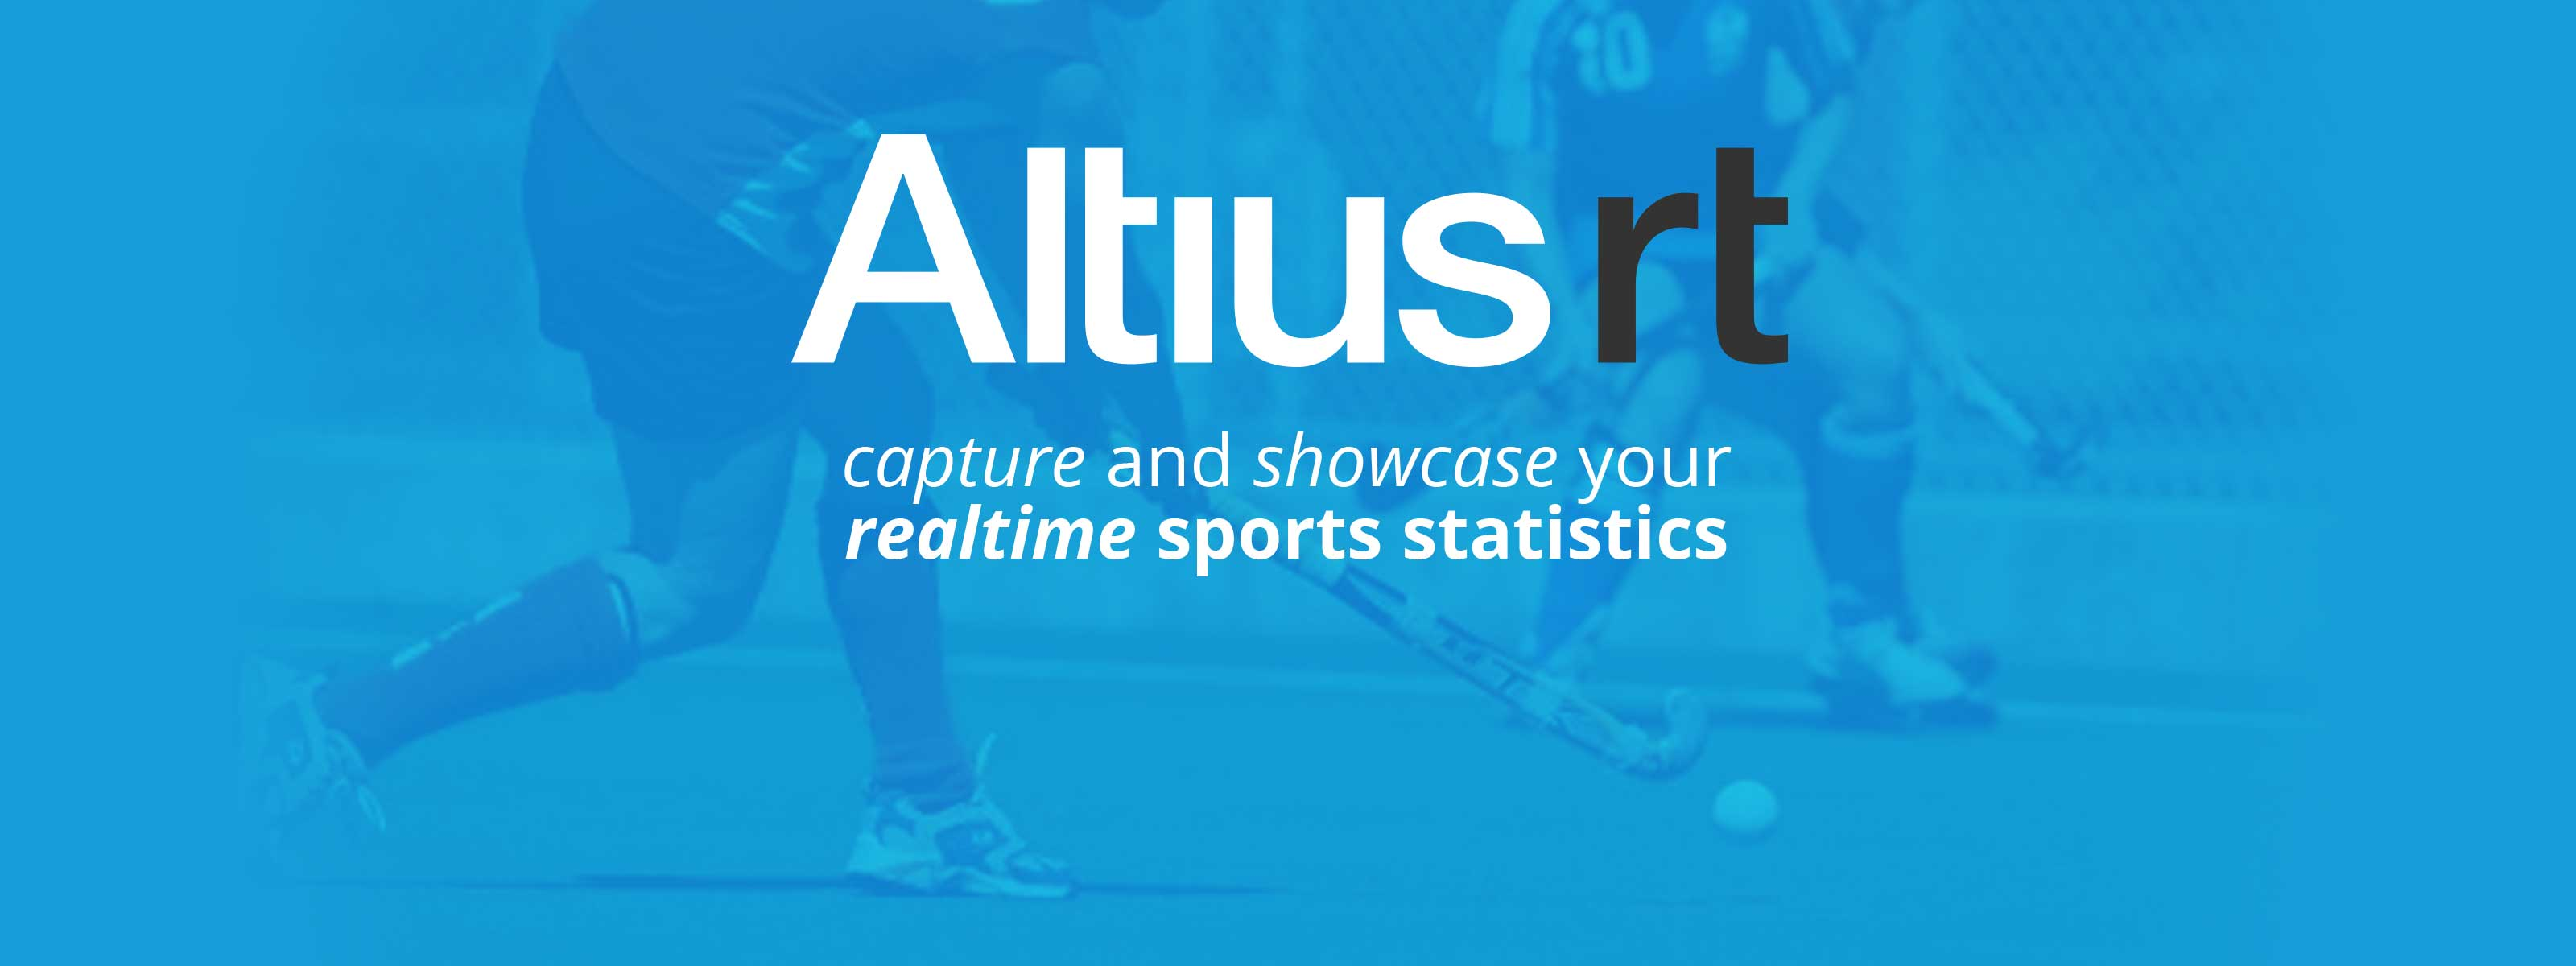 capture and showcase your realtime sports statistics